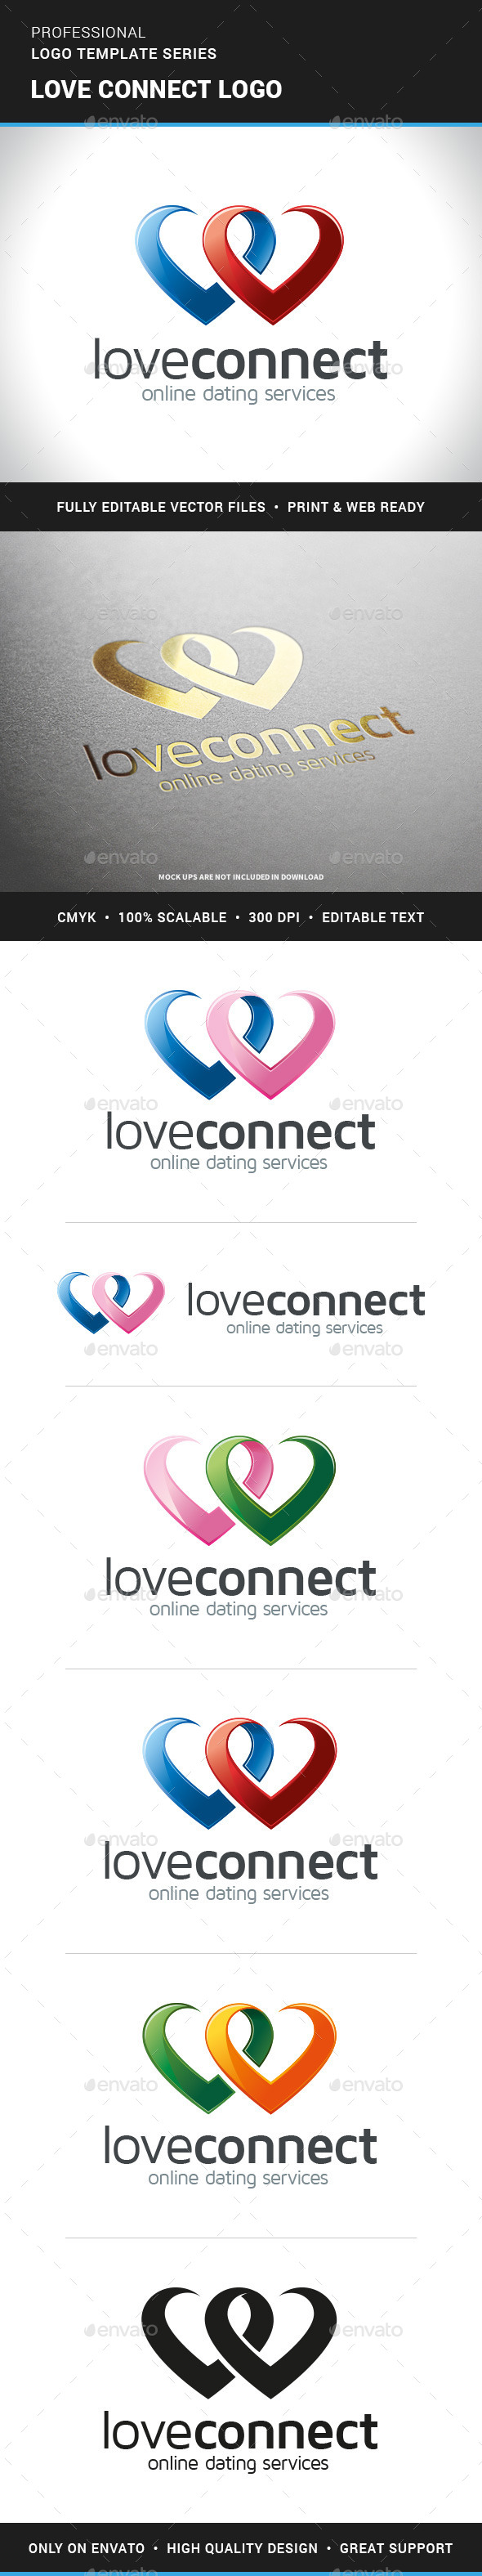 Love Connect Logo Template